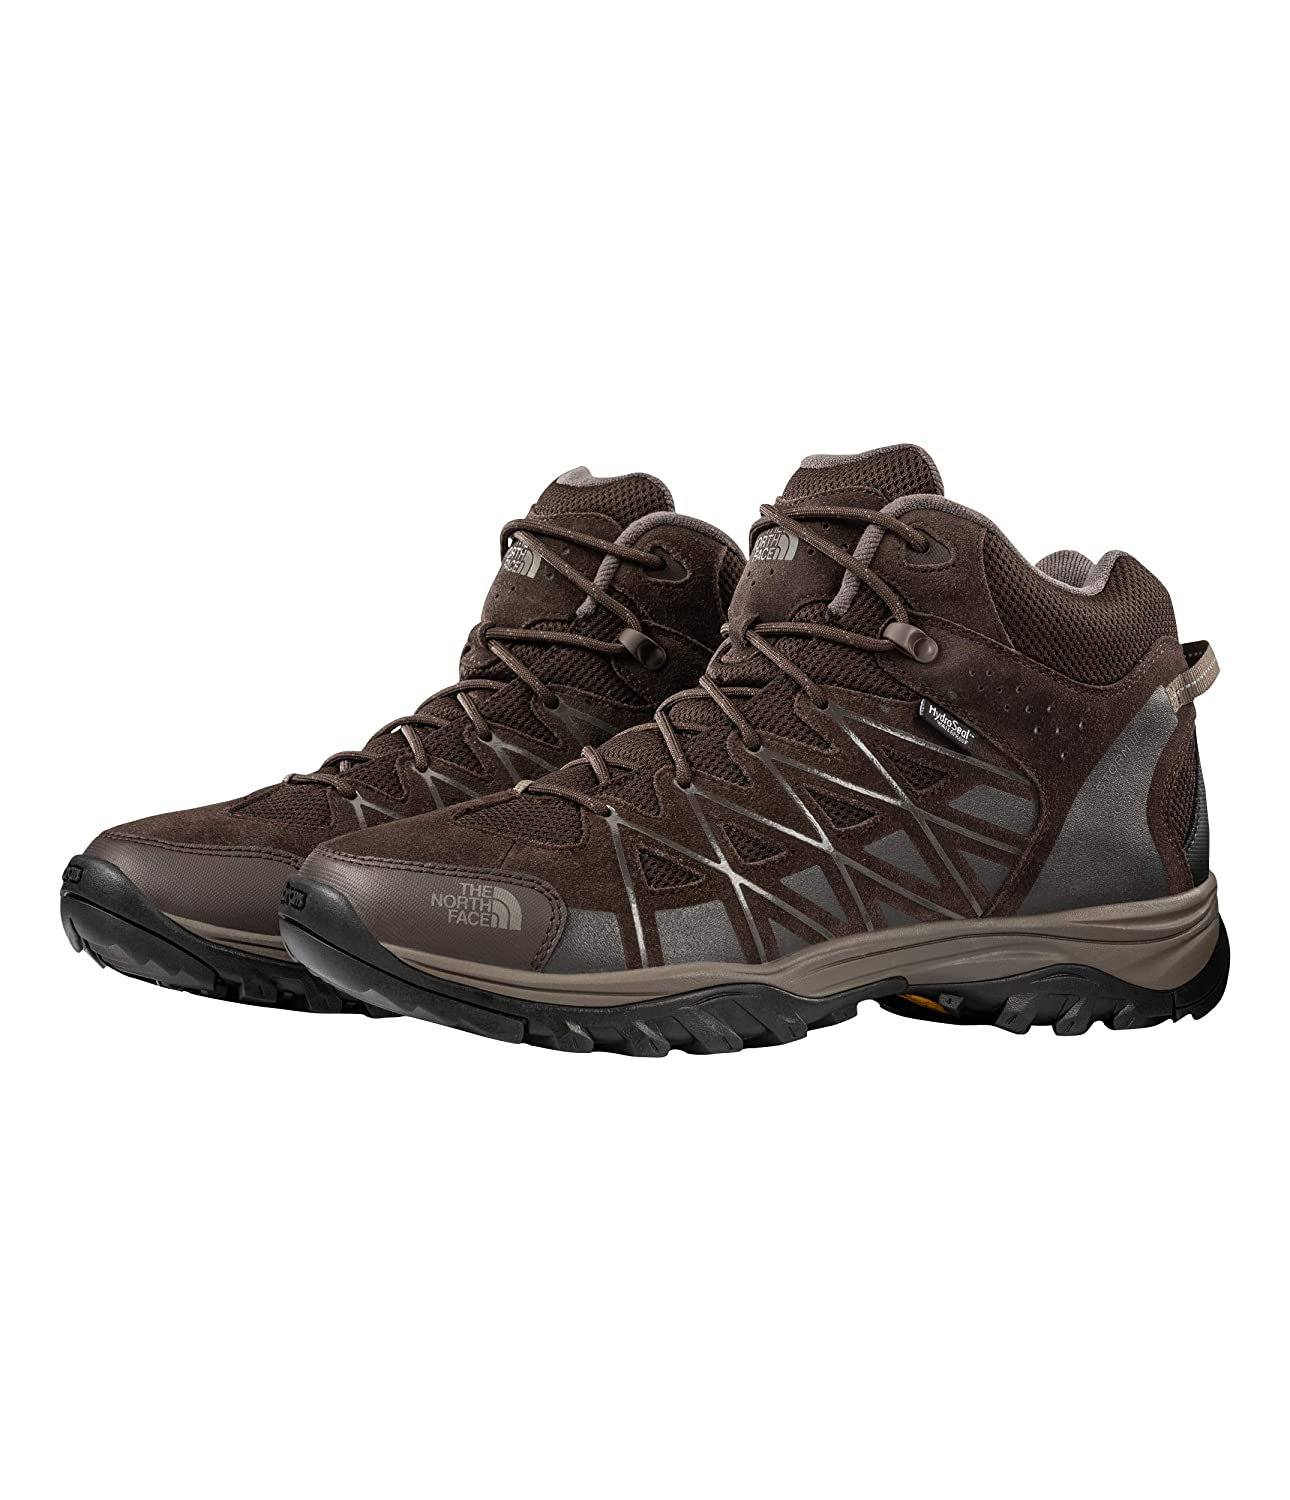 3add67180 The North Face Storm III Mid Waterproof Boot Mens